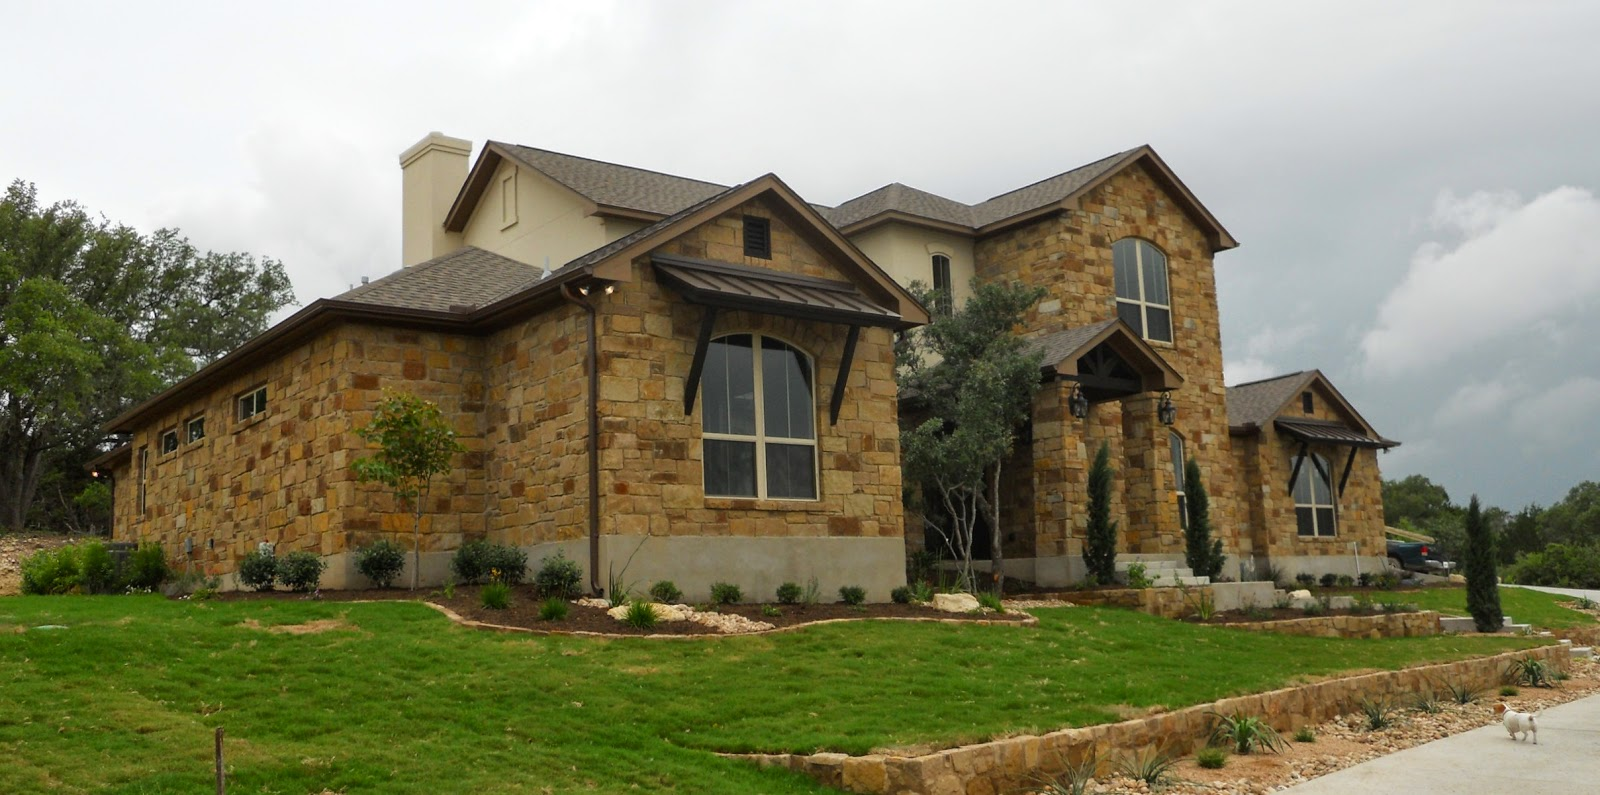 Rob sanders designer custom home remodel design for Hill country home plans